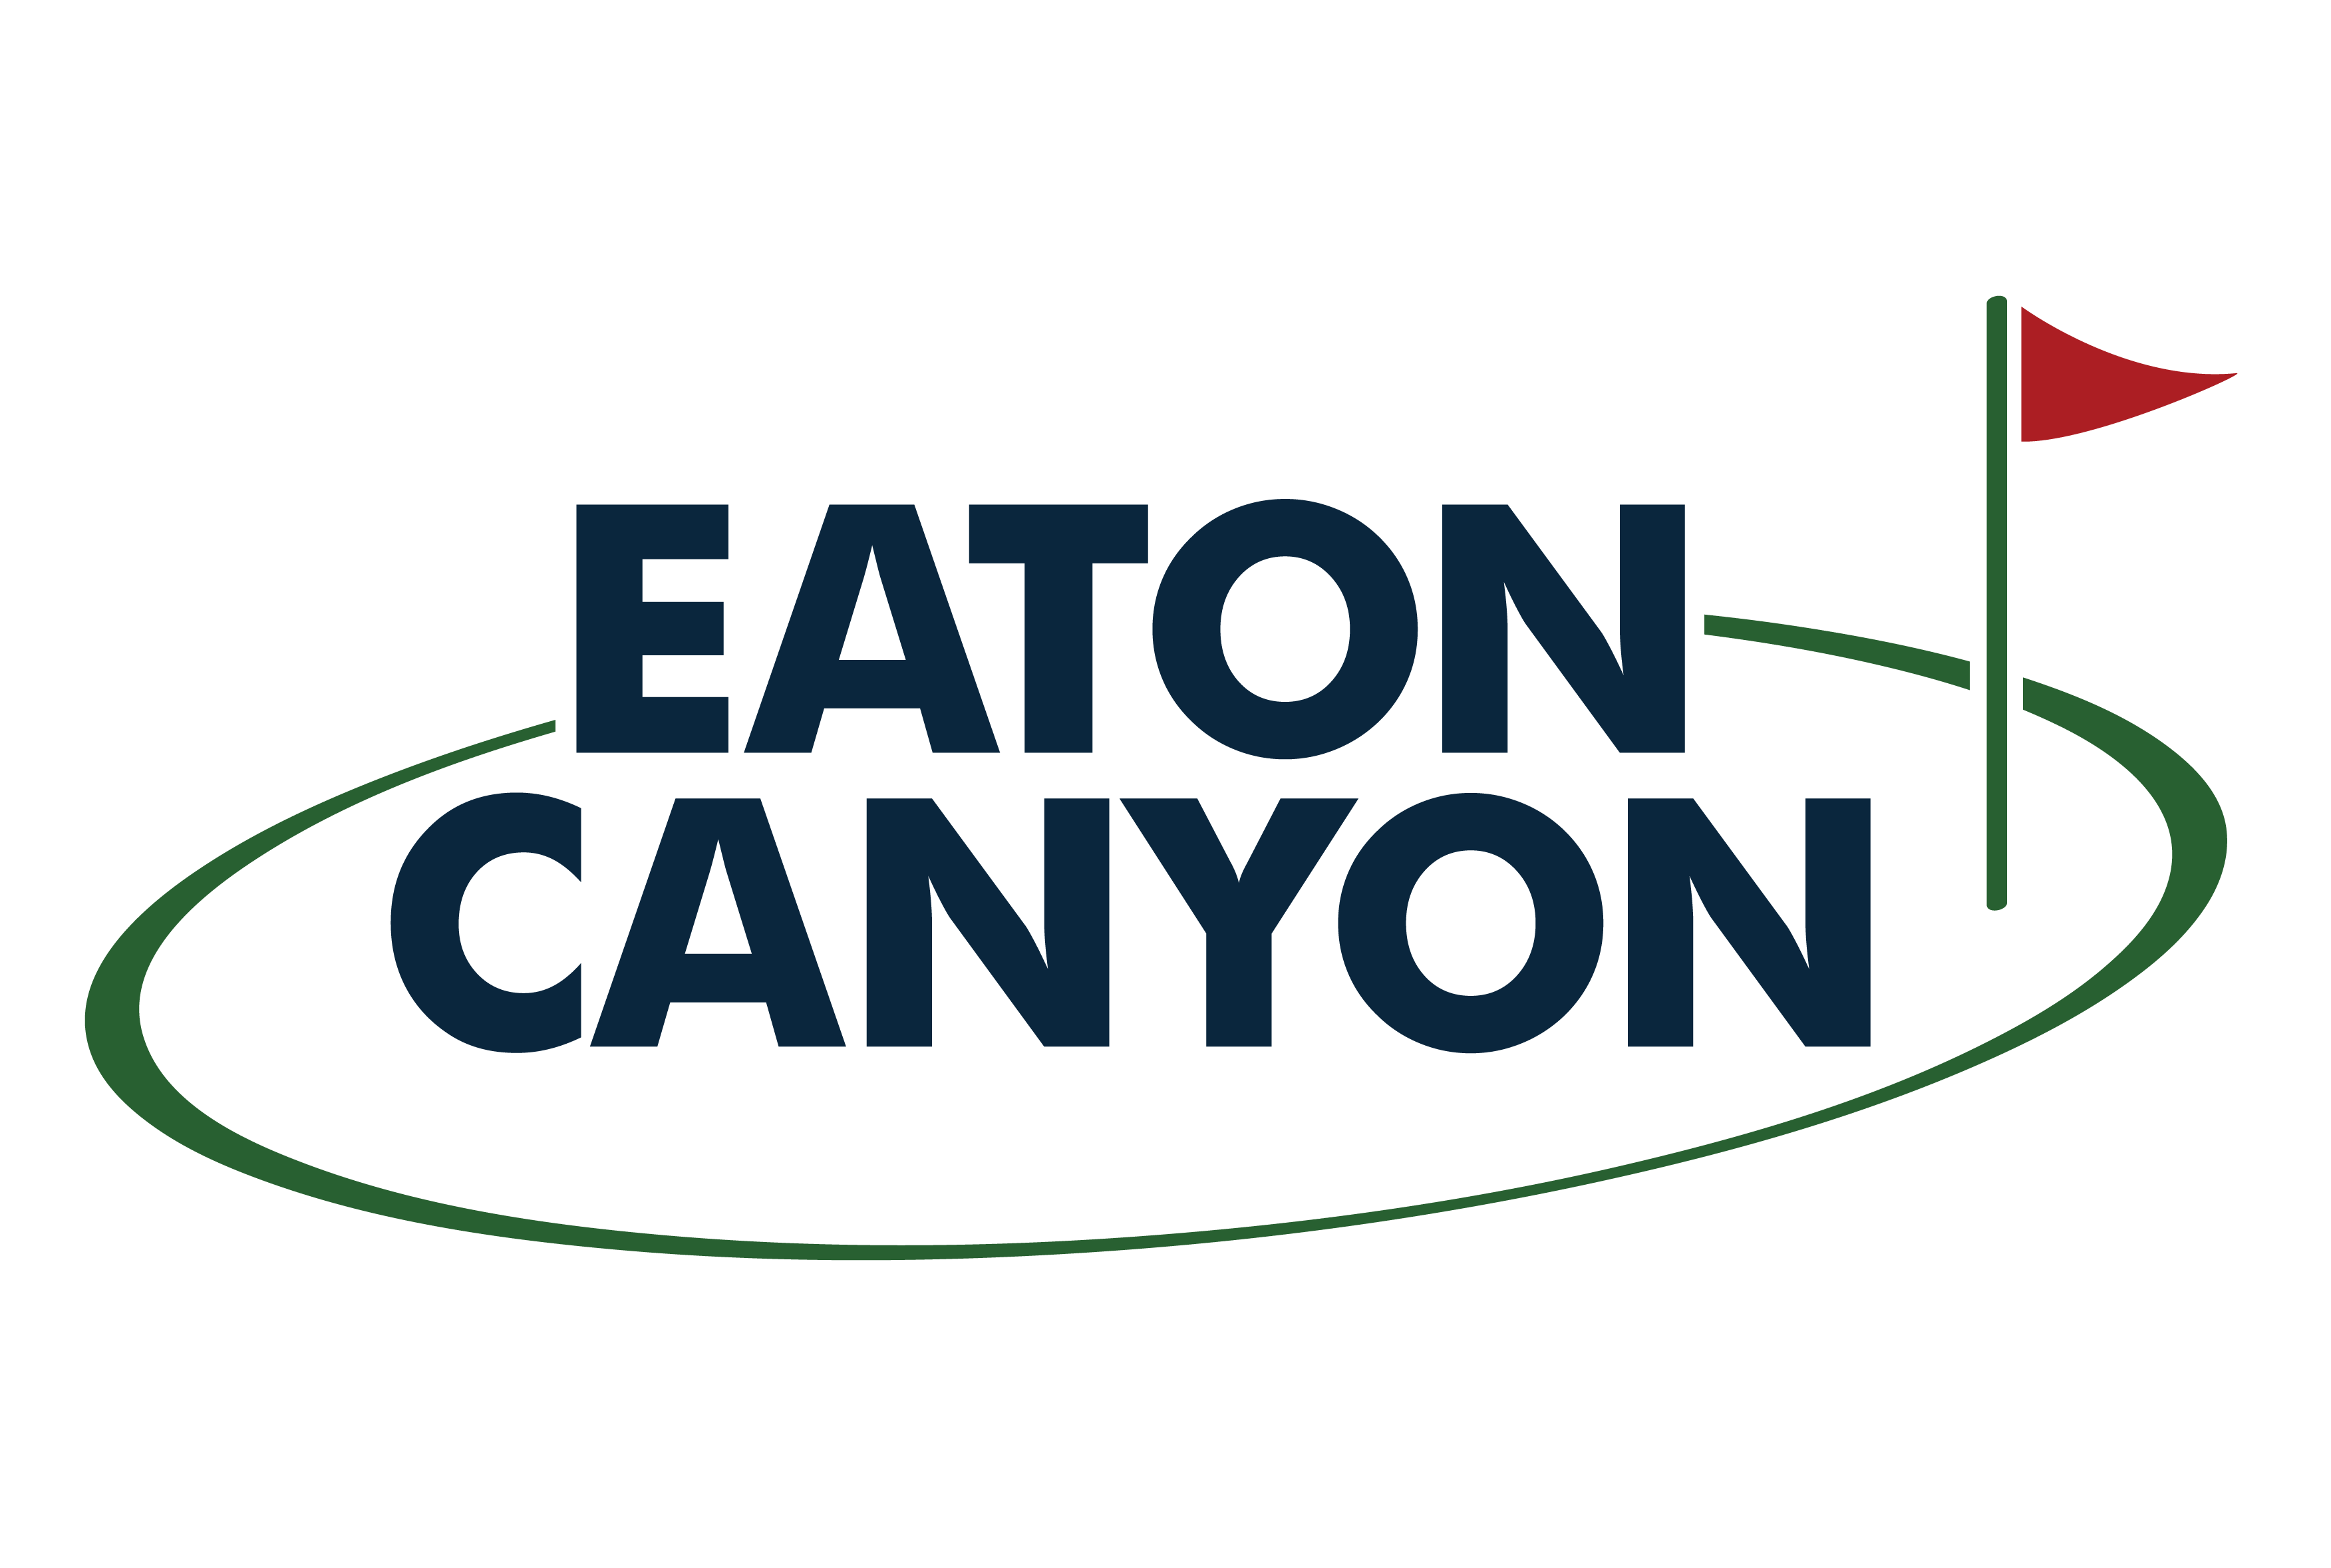 Eaton Canyon Logo FINAL